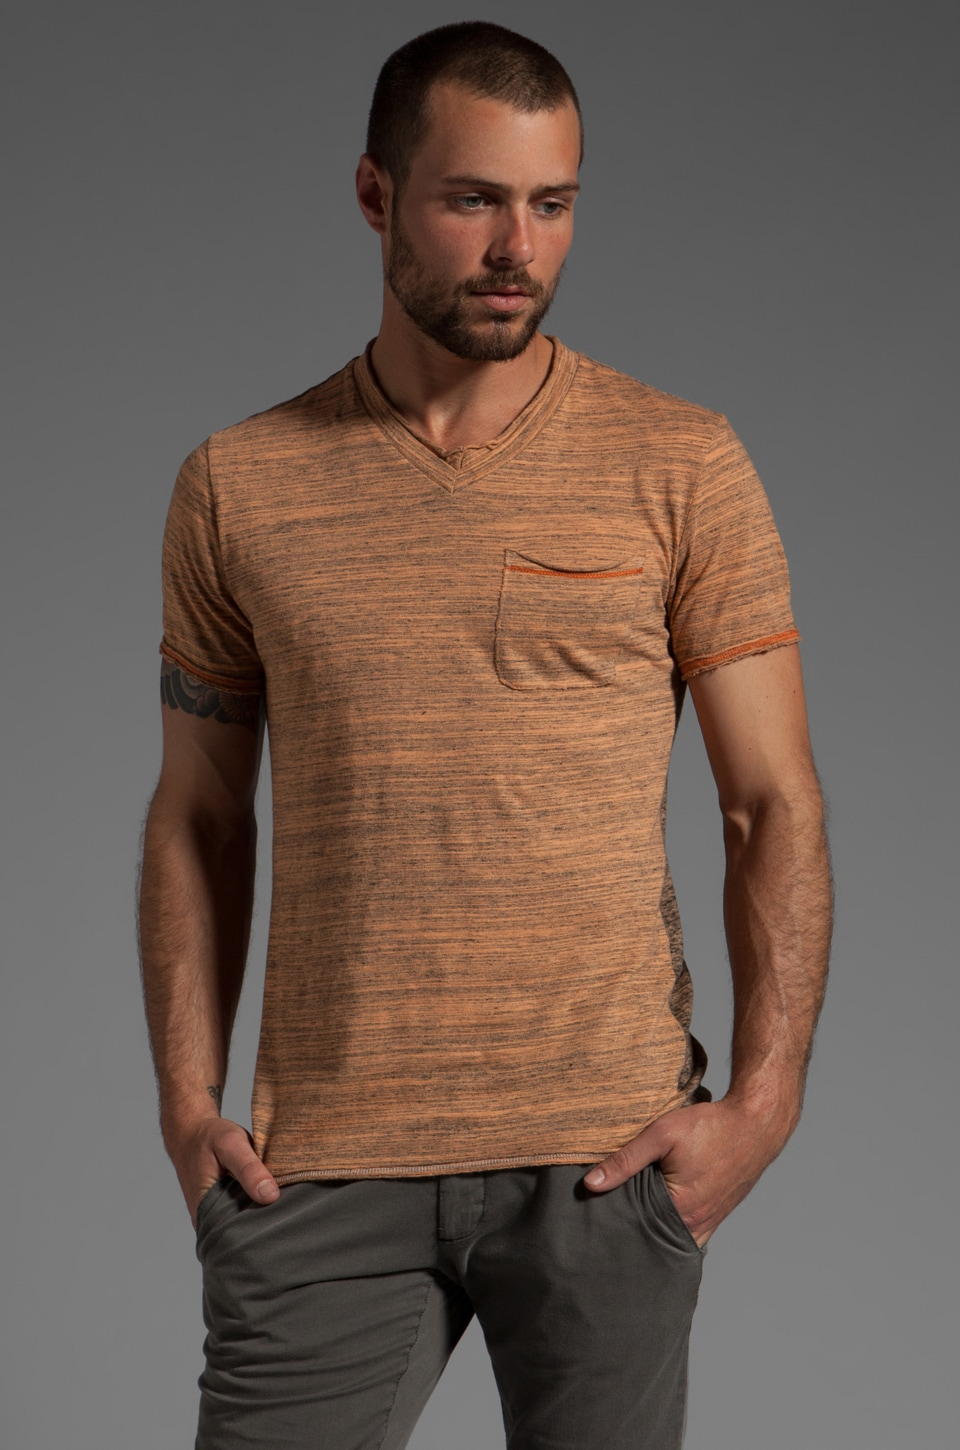 Cohesive & co. Reverse Detail Stripe S/S V-Neck Tee in Cantaloupe